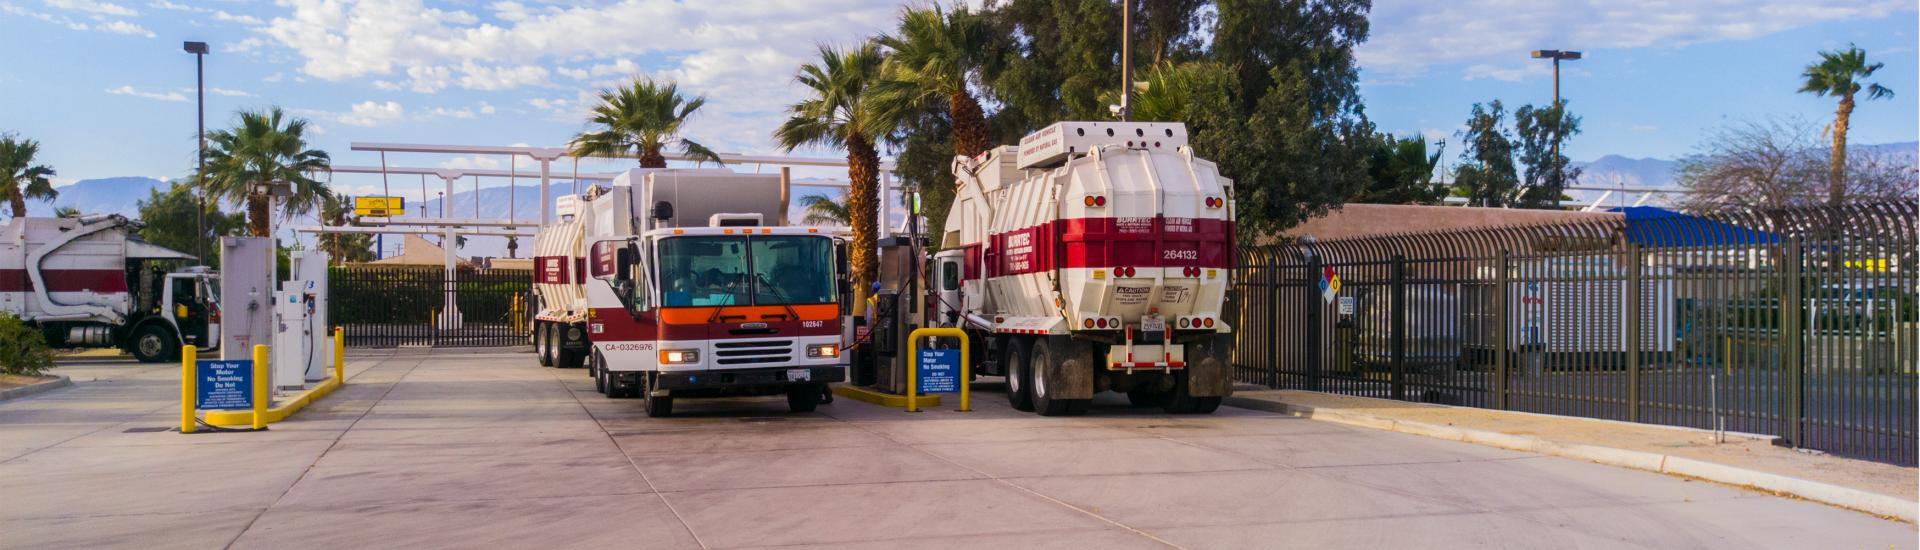 SunLine's Thousand Palms Fuel Station Serving Customers